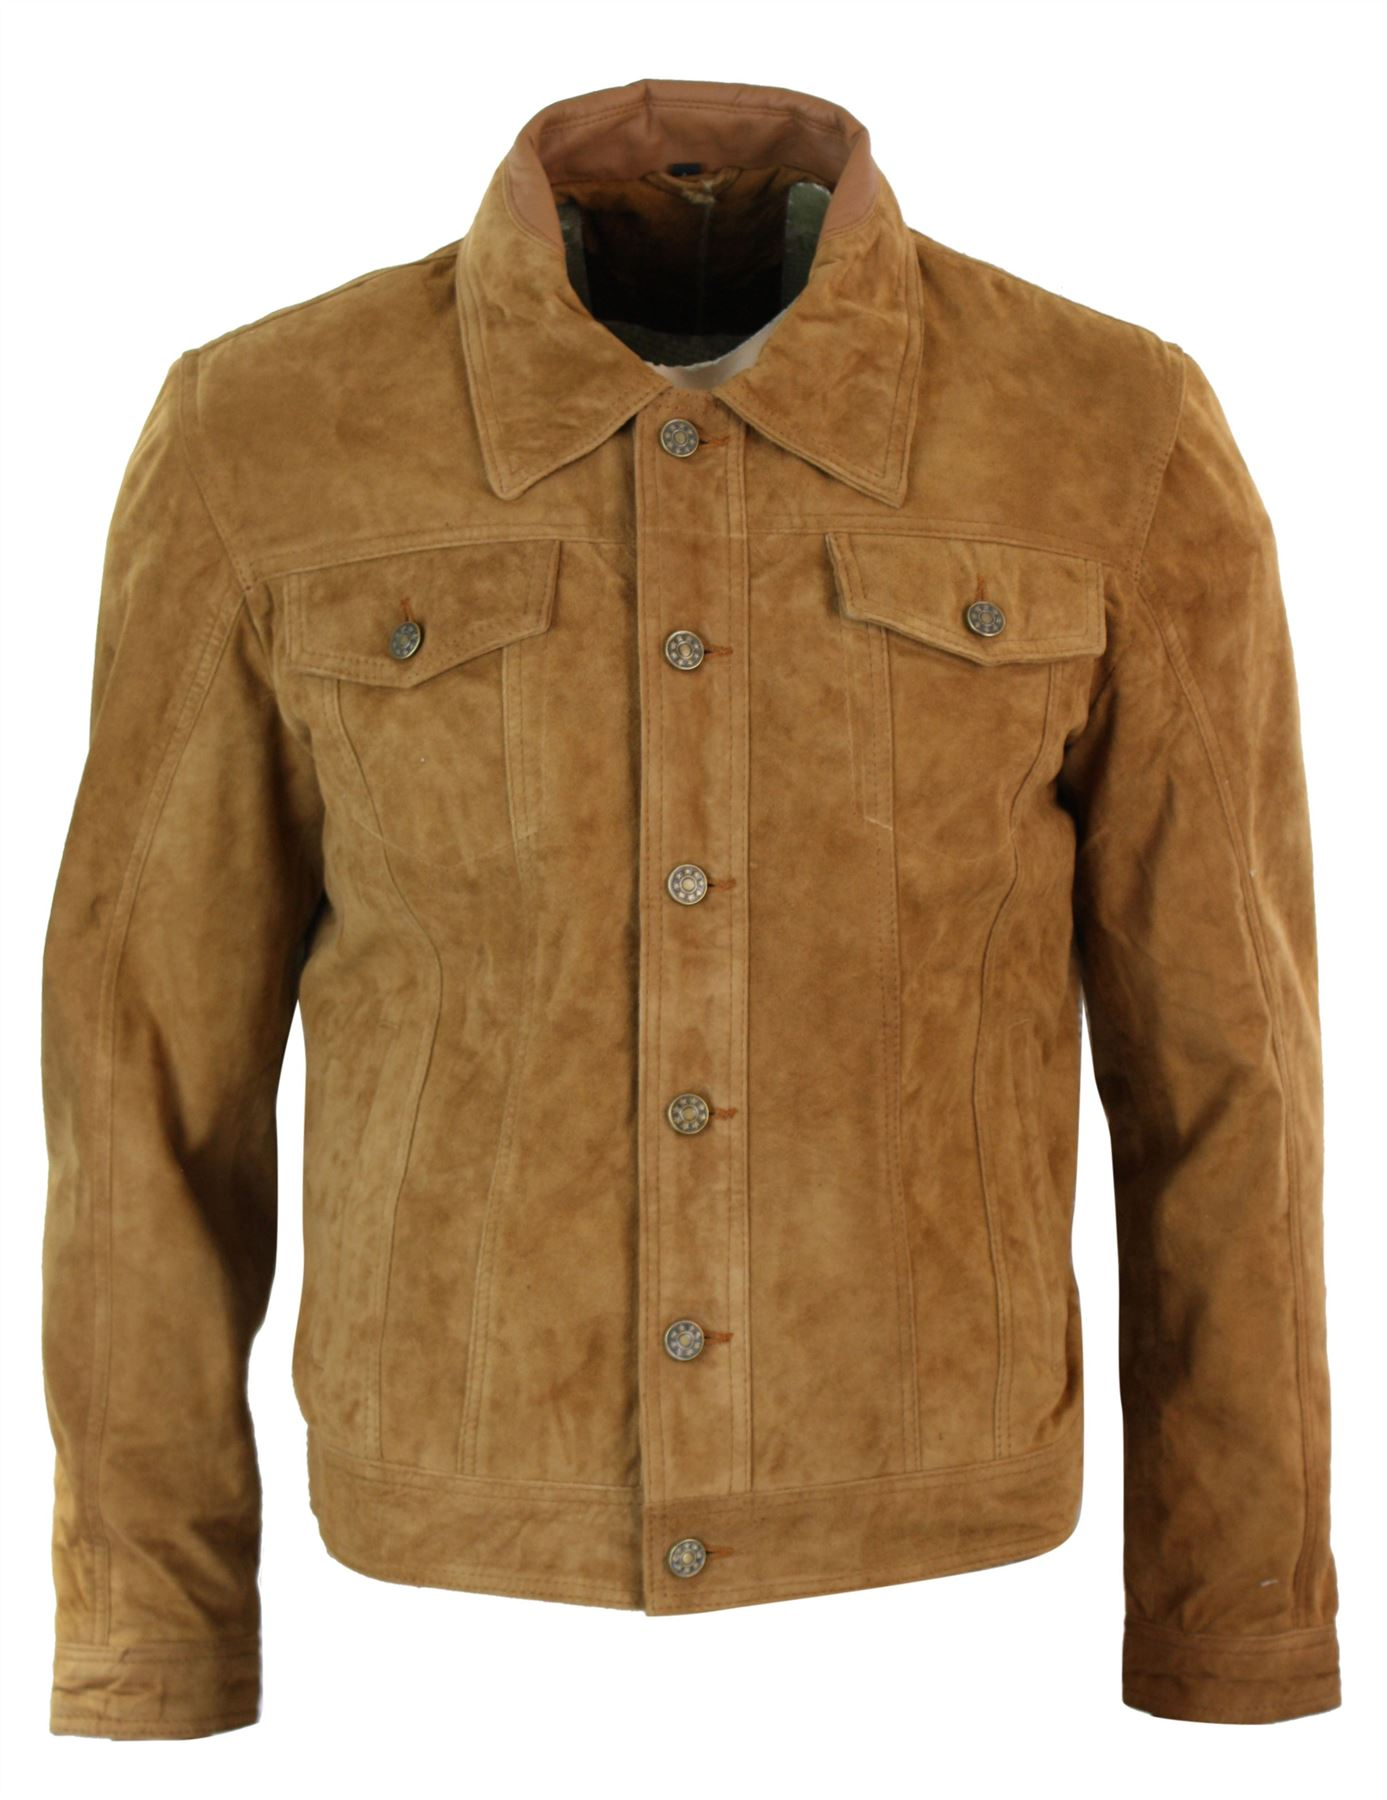 Mens leather jean jacket